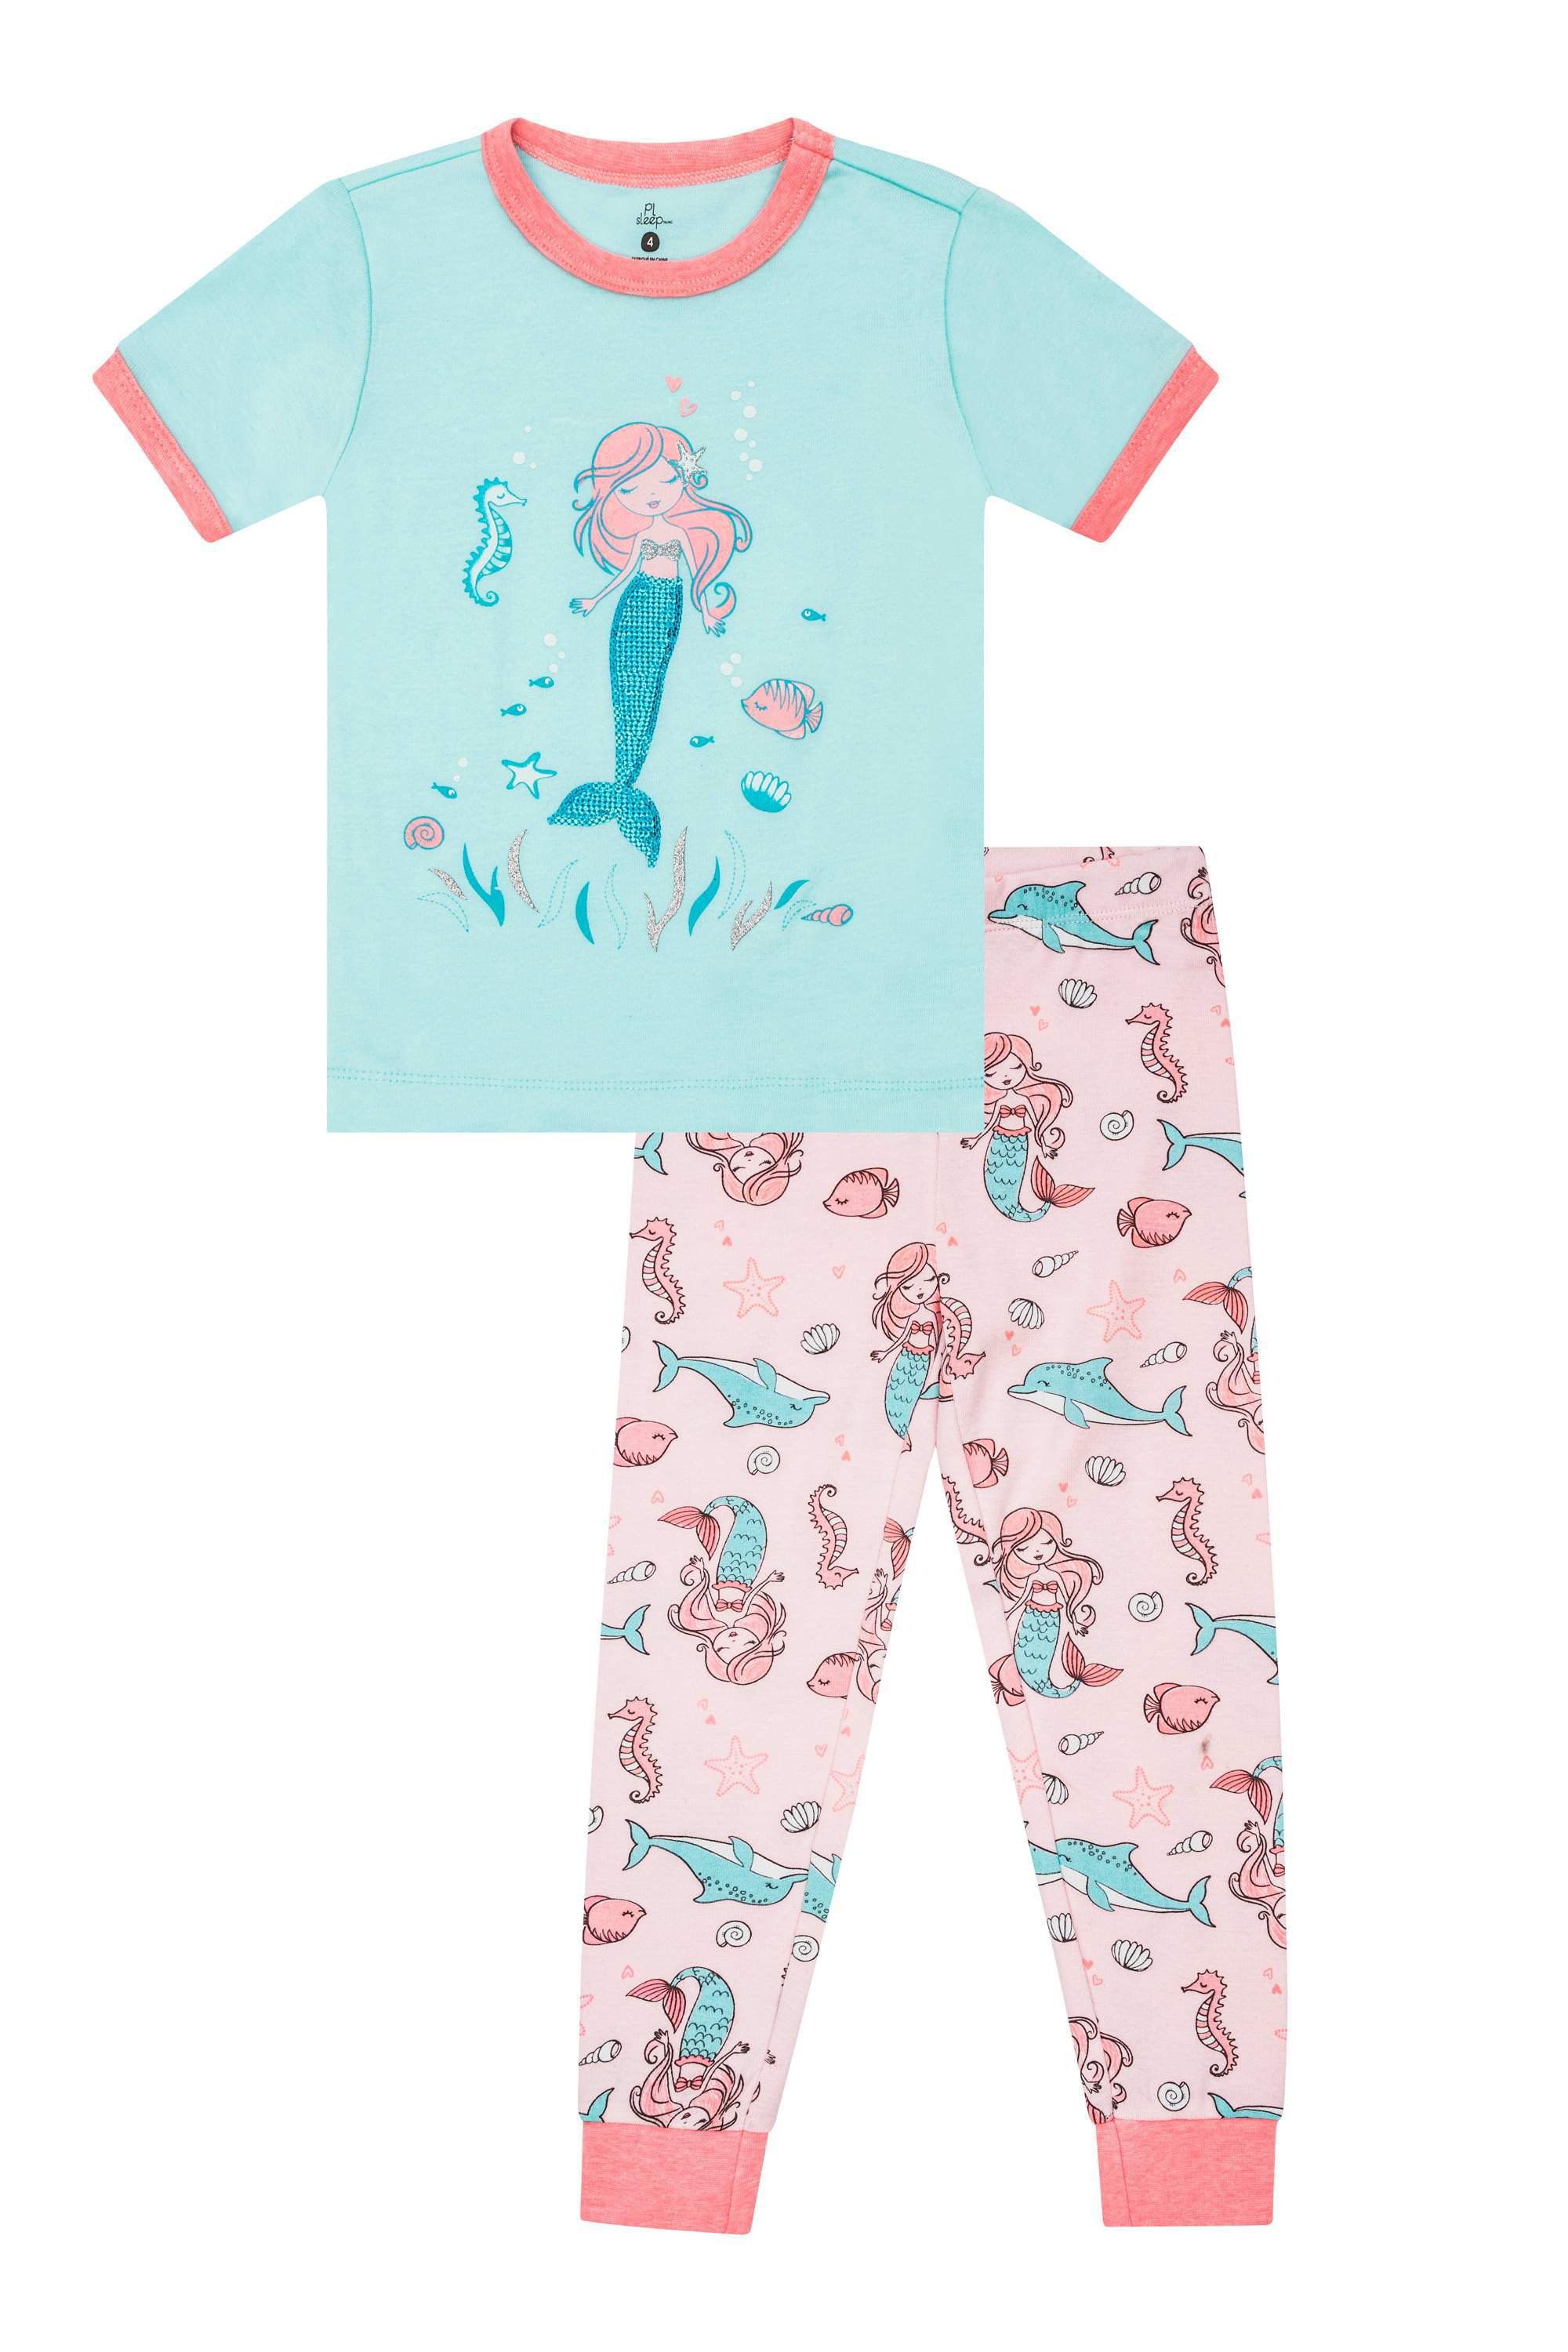 Cotton Tight Fit, 2pc Pajama Set (Toddler Girls)